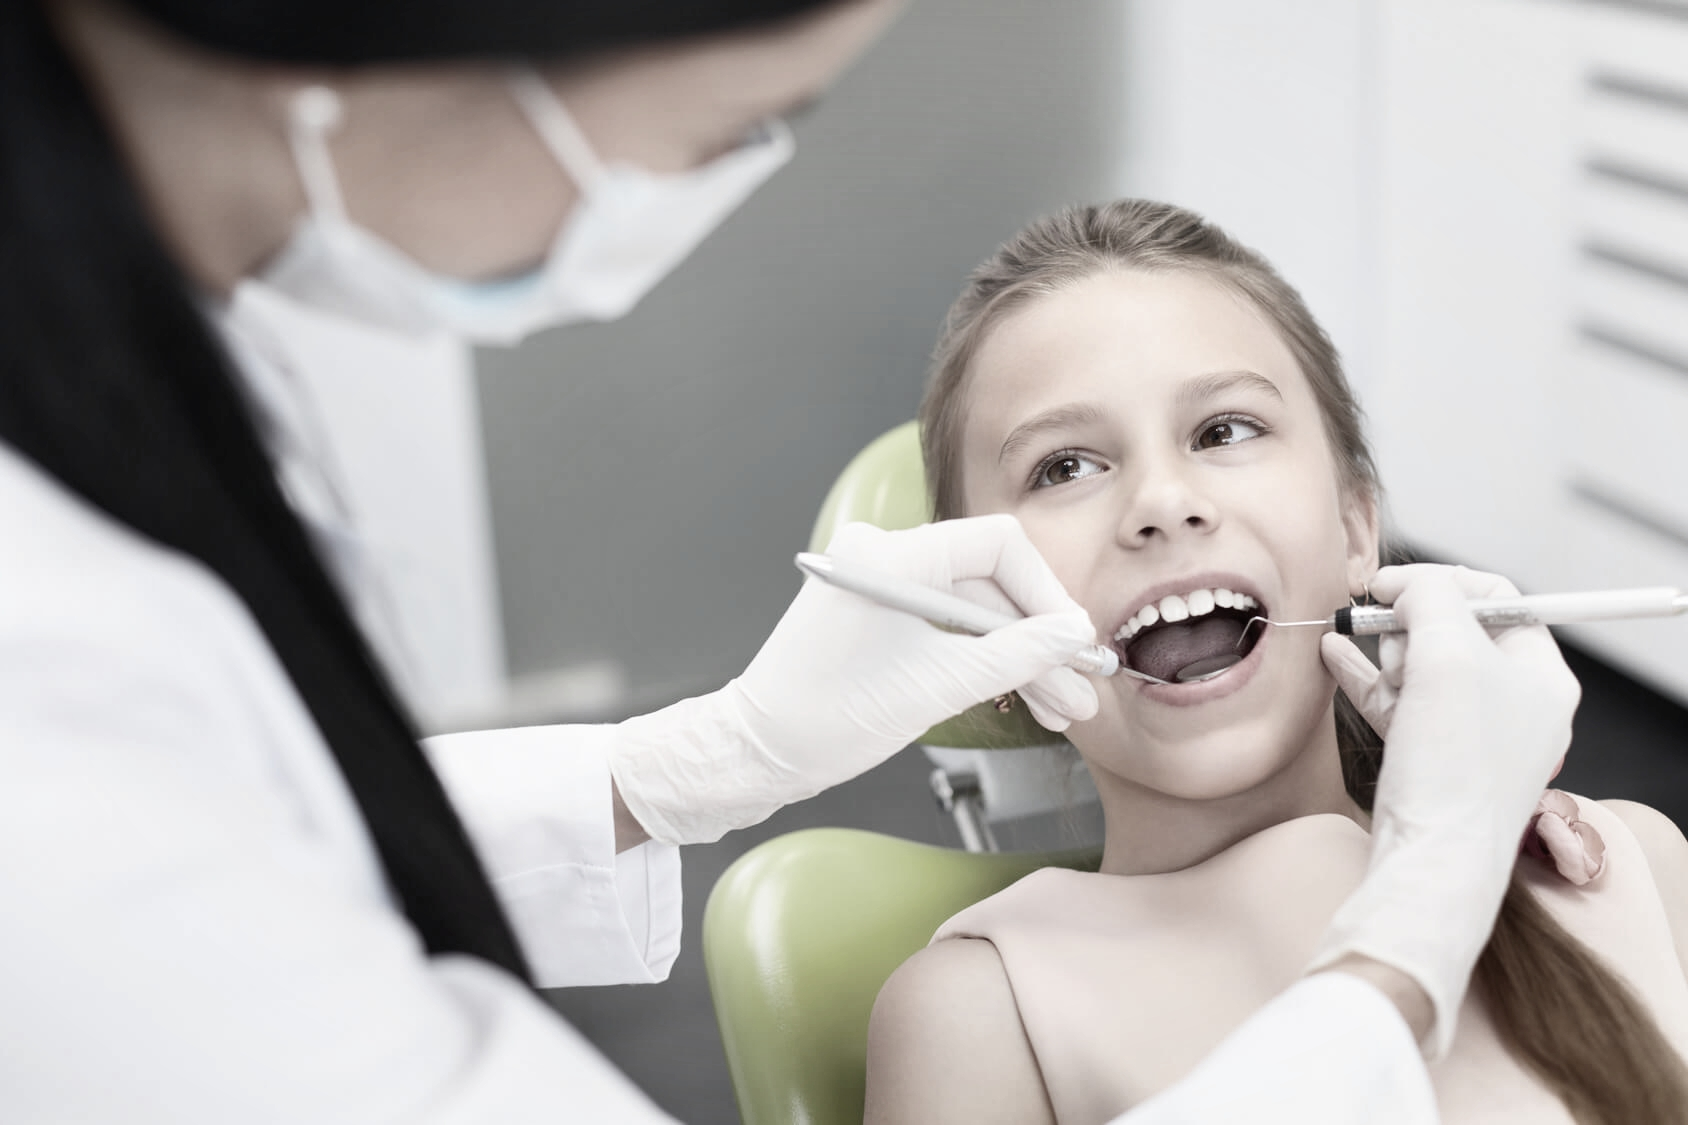 Girl smiling in the dentist chair as she has her regular child dental check-up